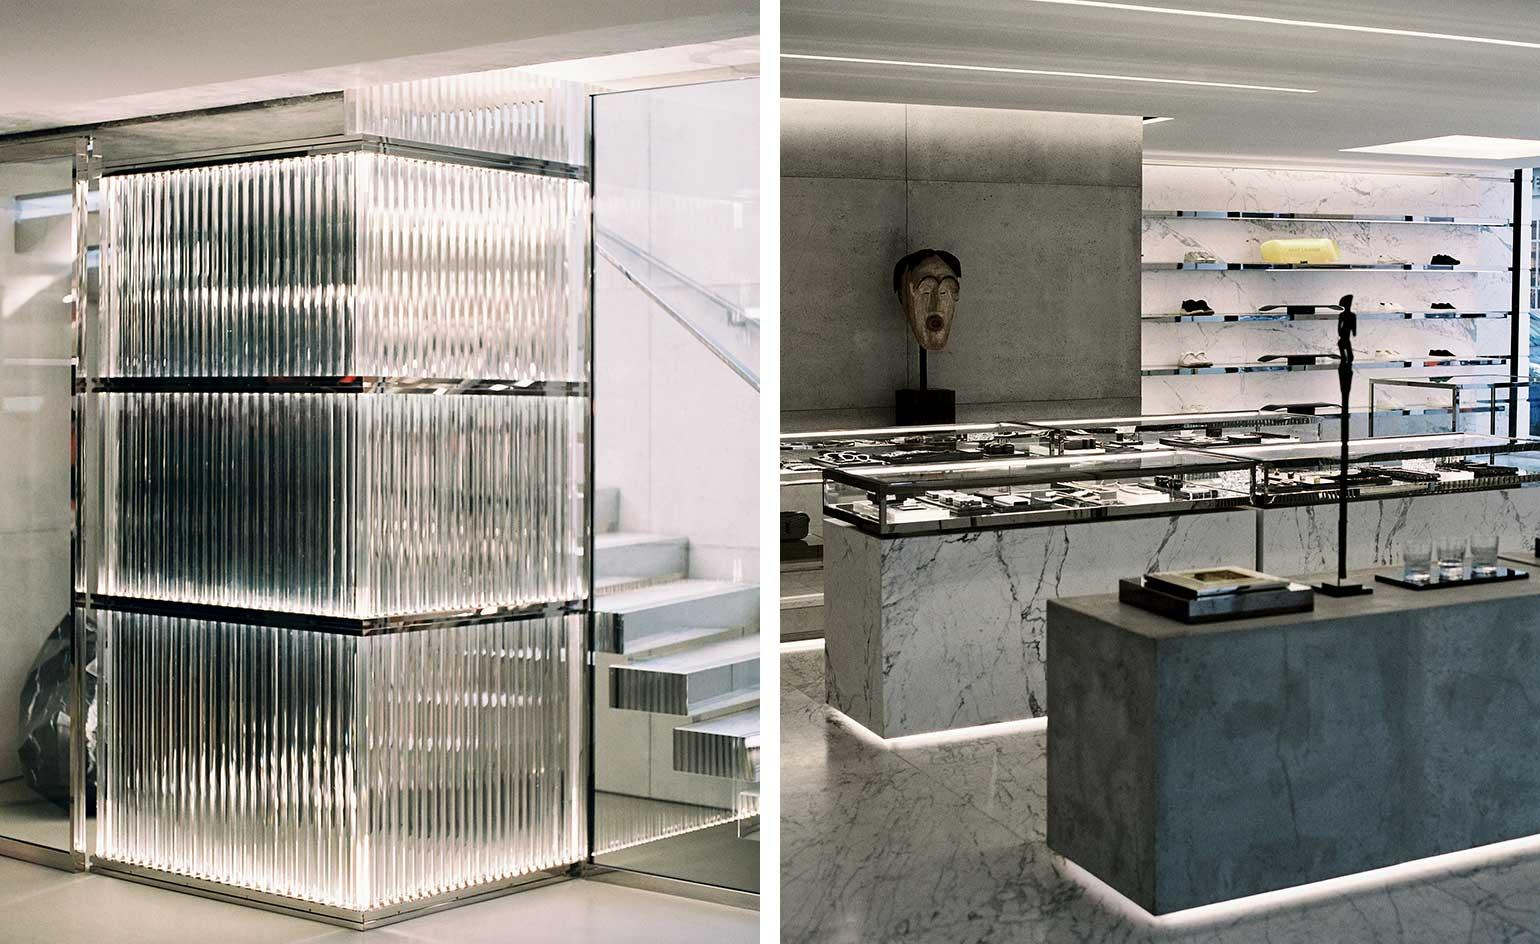 Anthony Vaccarello launches his reimagined retail concept with the new Saint Laurent Rive Droite boutique